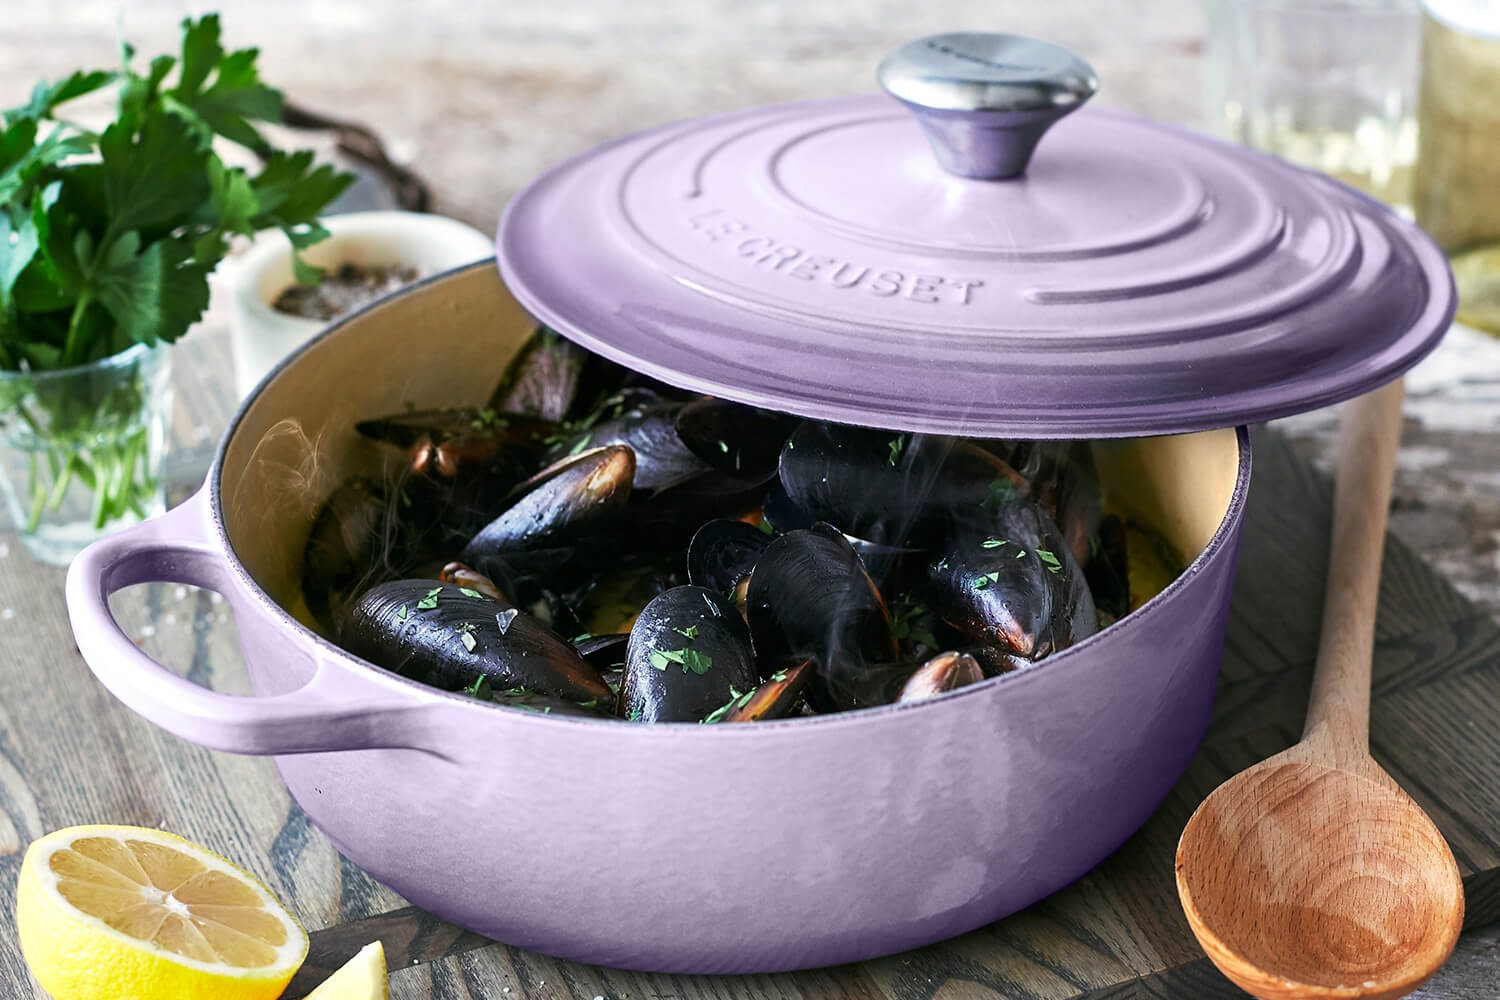 Lavender Dutch oven via Le Creuset